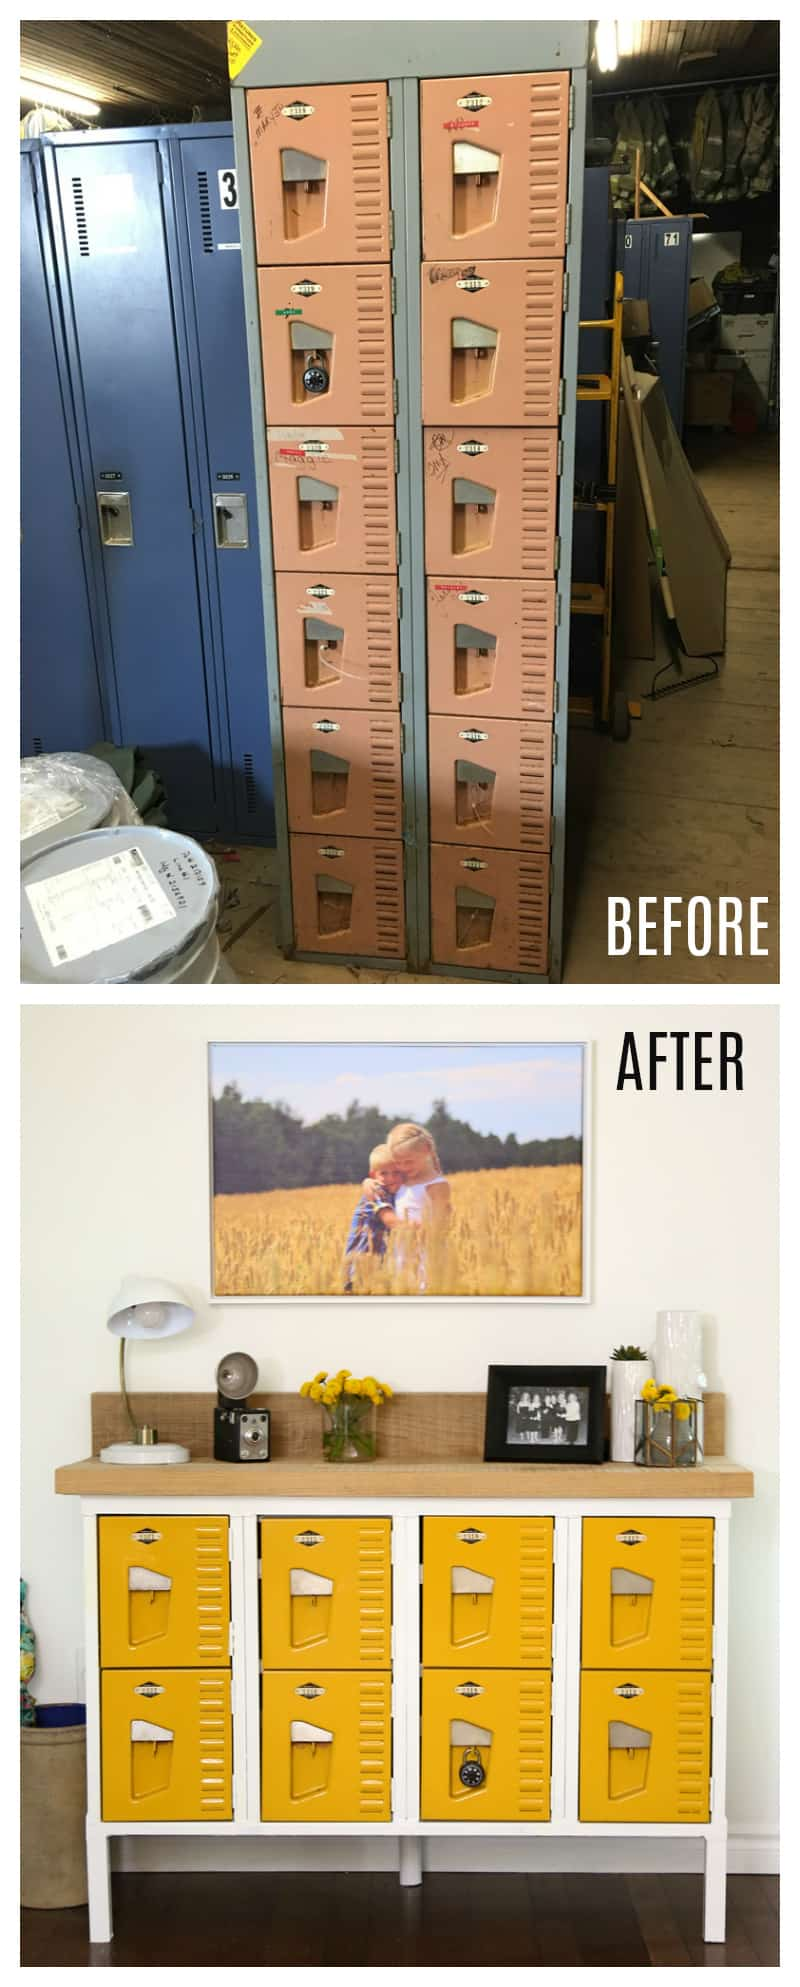 Vintage Locker Console Table Before and After